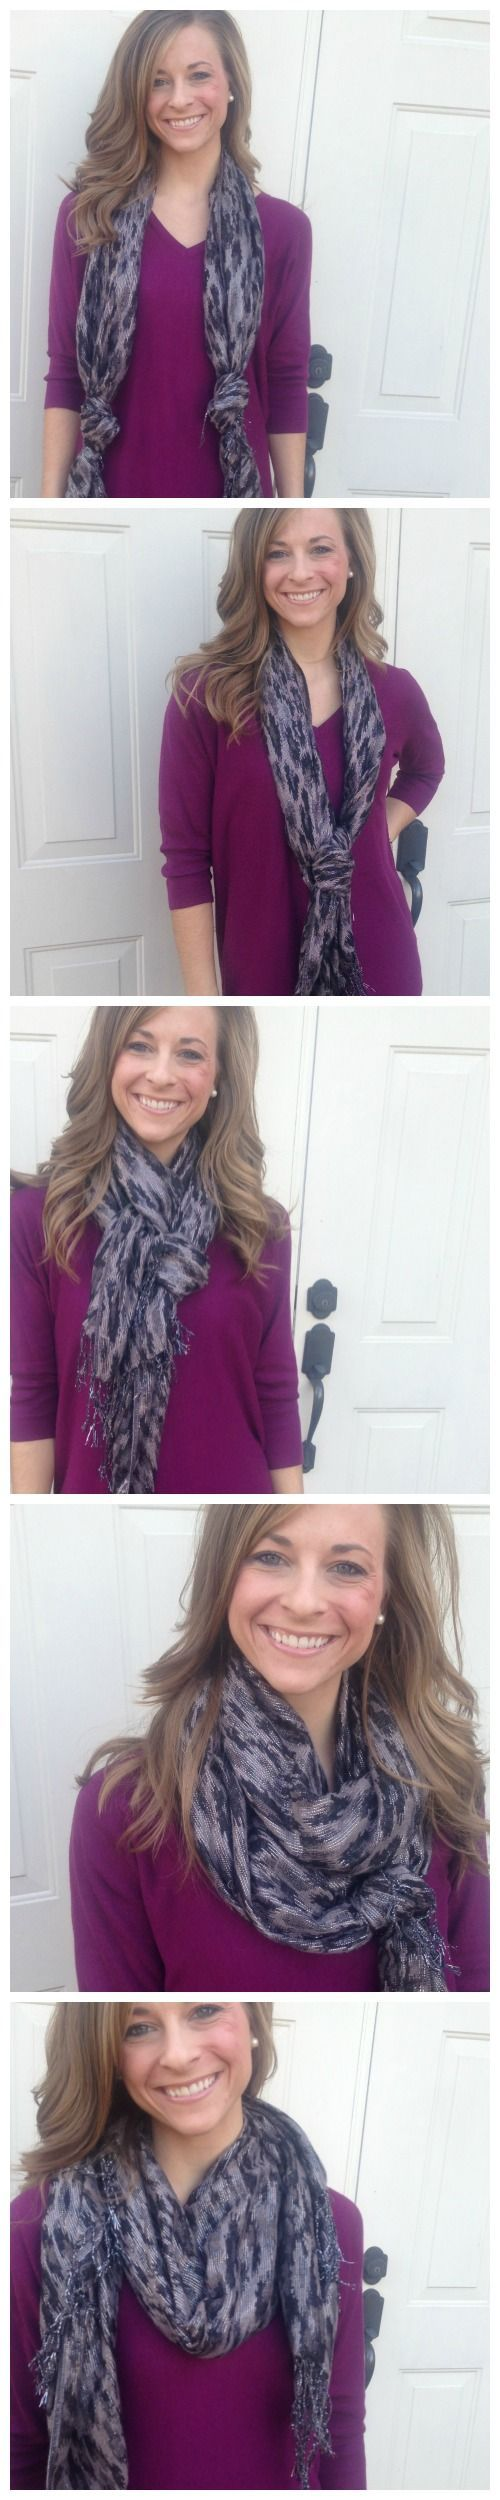 5 Ways to Tie a Scarf! Fashion Tips and Tricks!